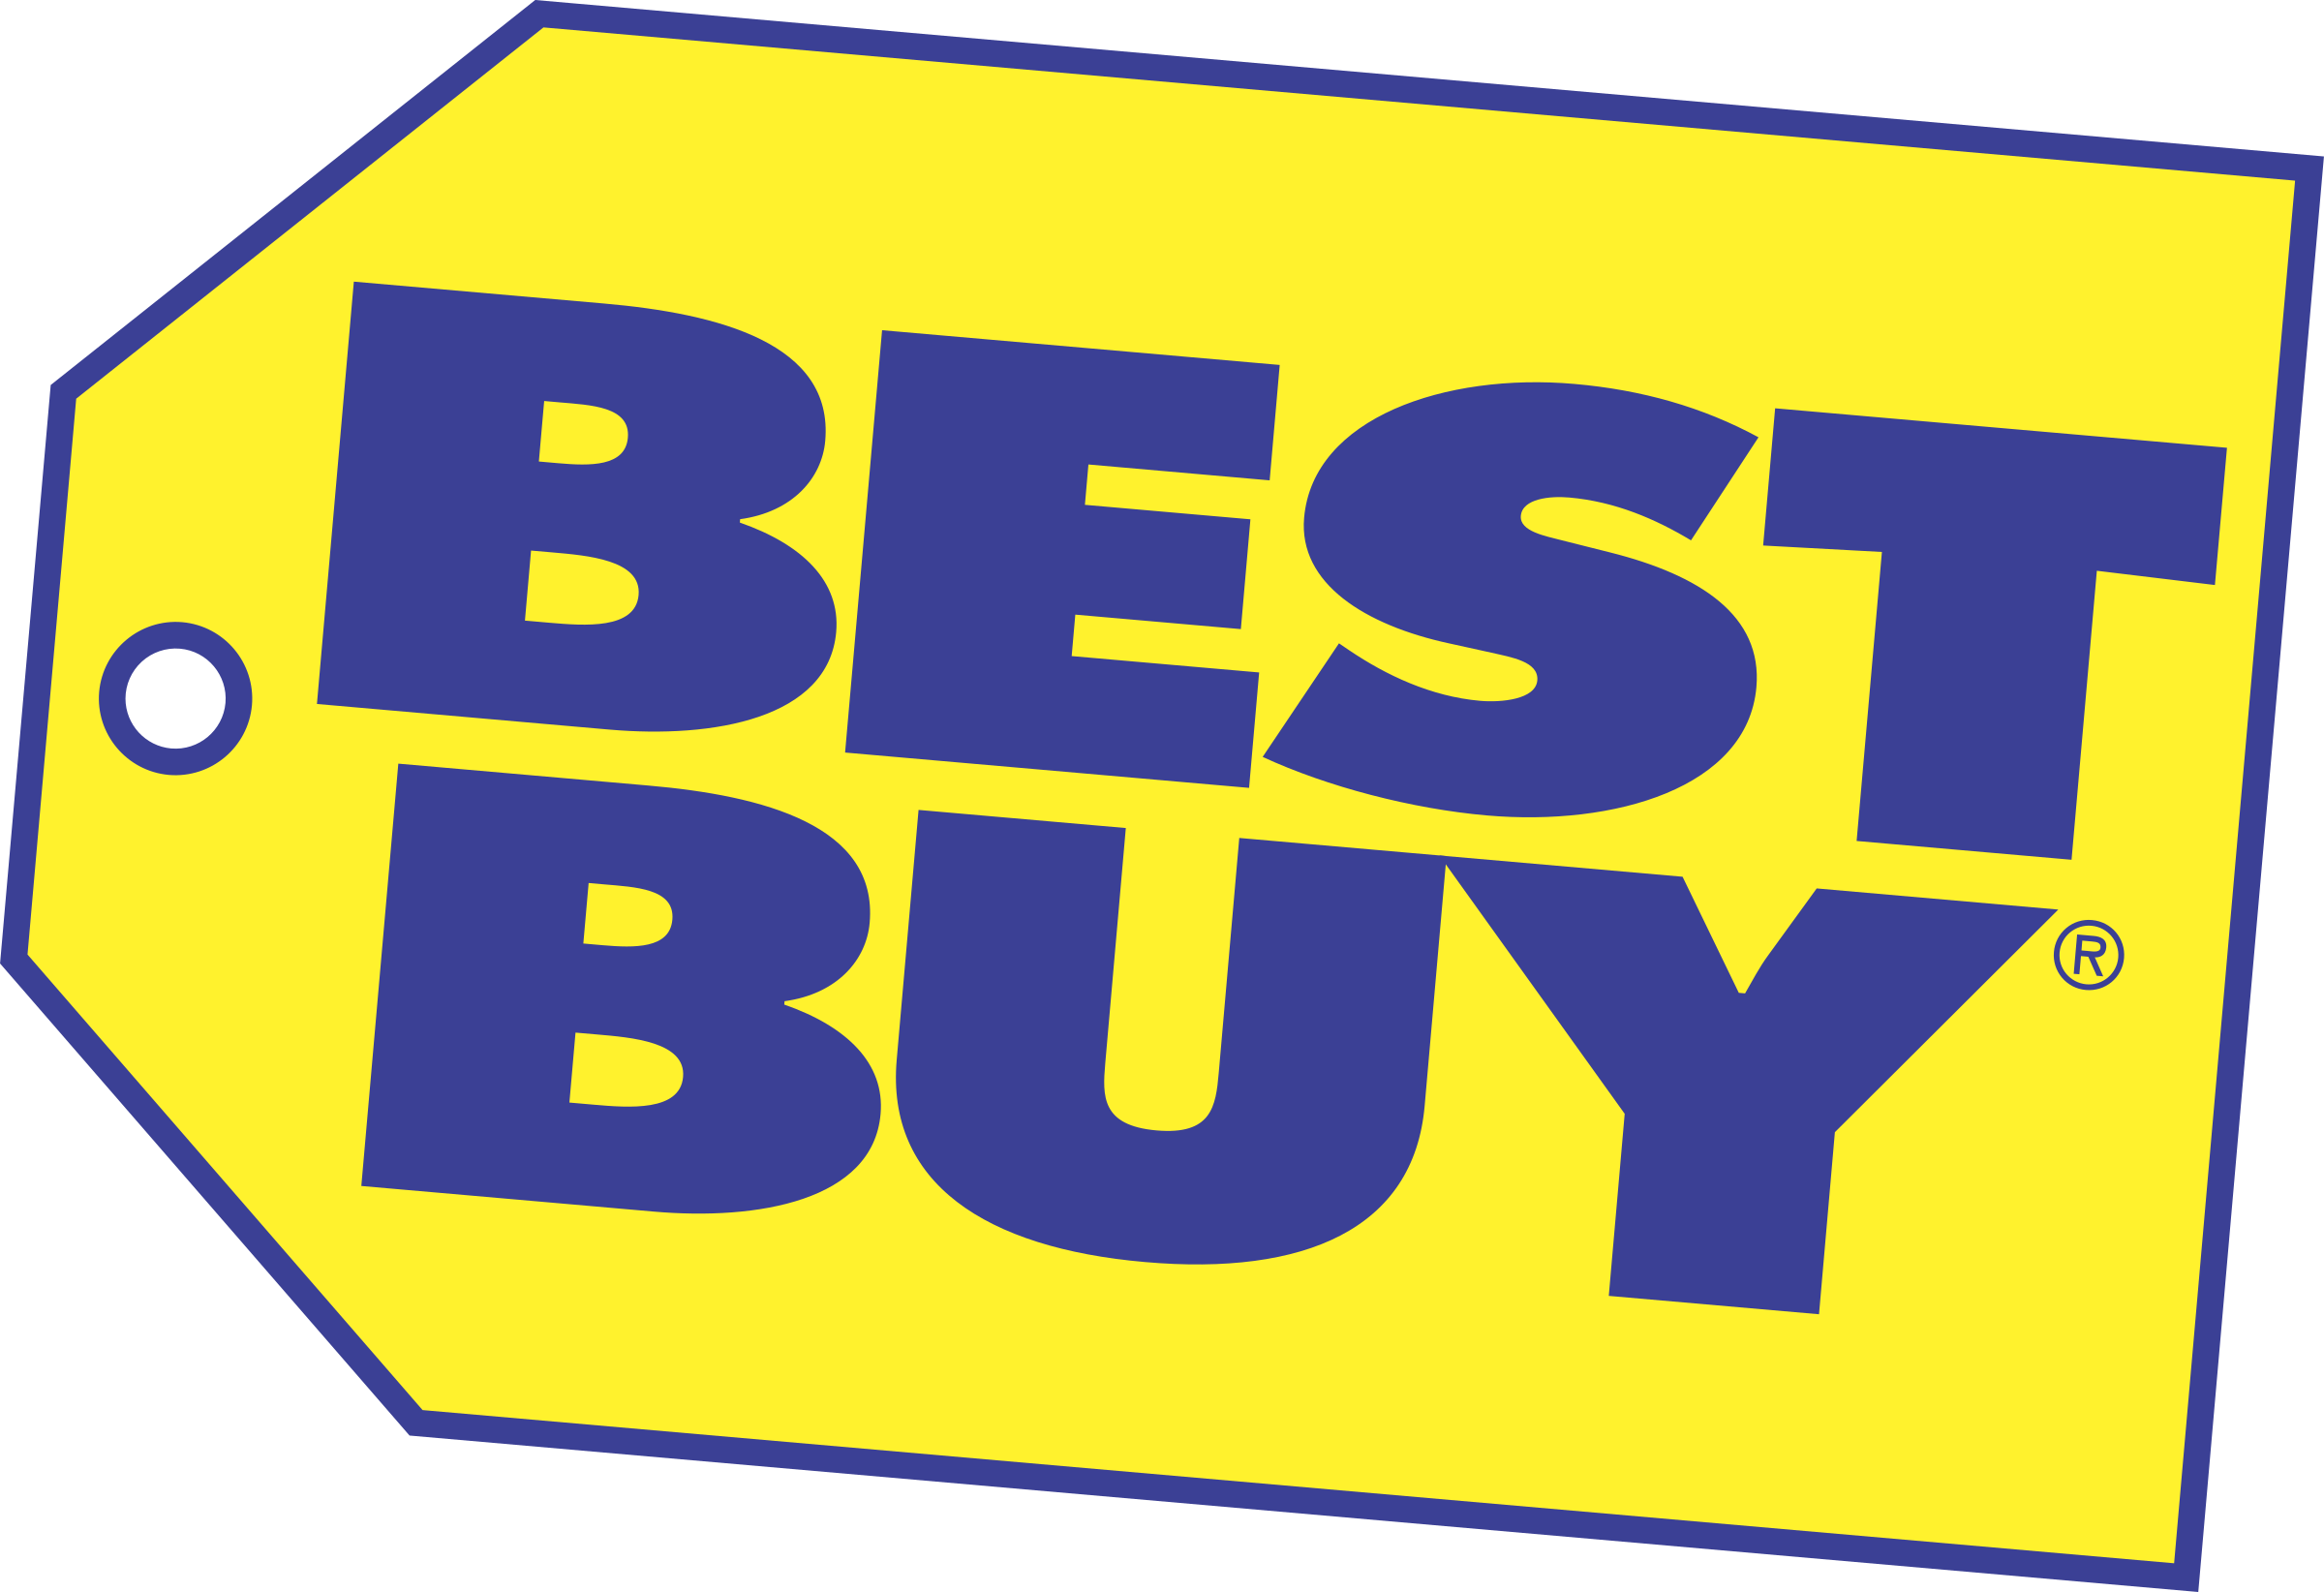 BEST BUY 1 Logo PNG Transparent & SVG Vector.